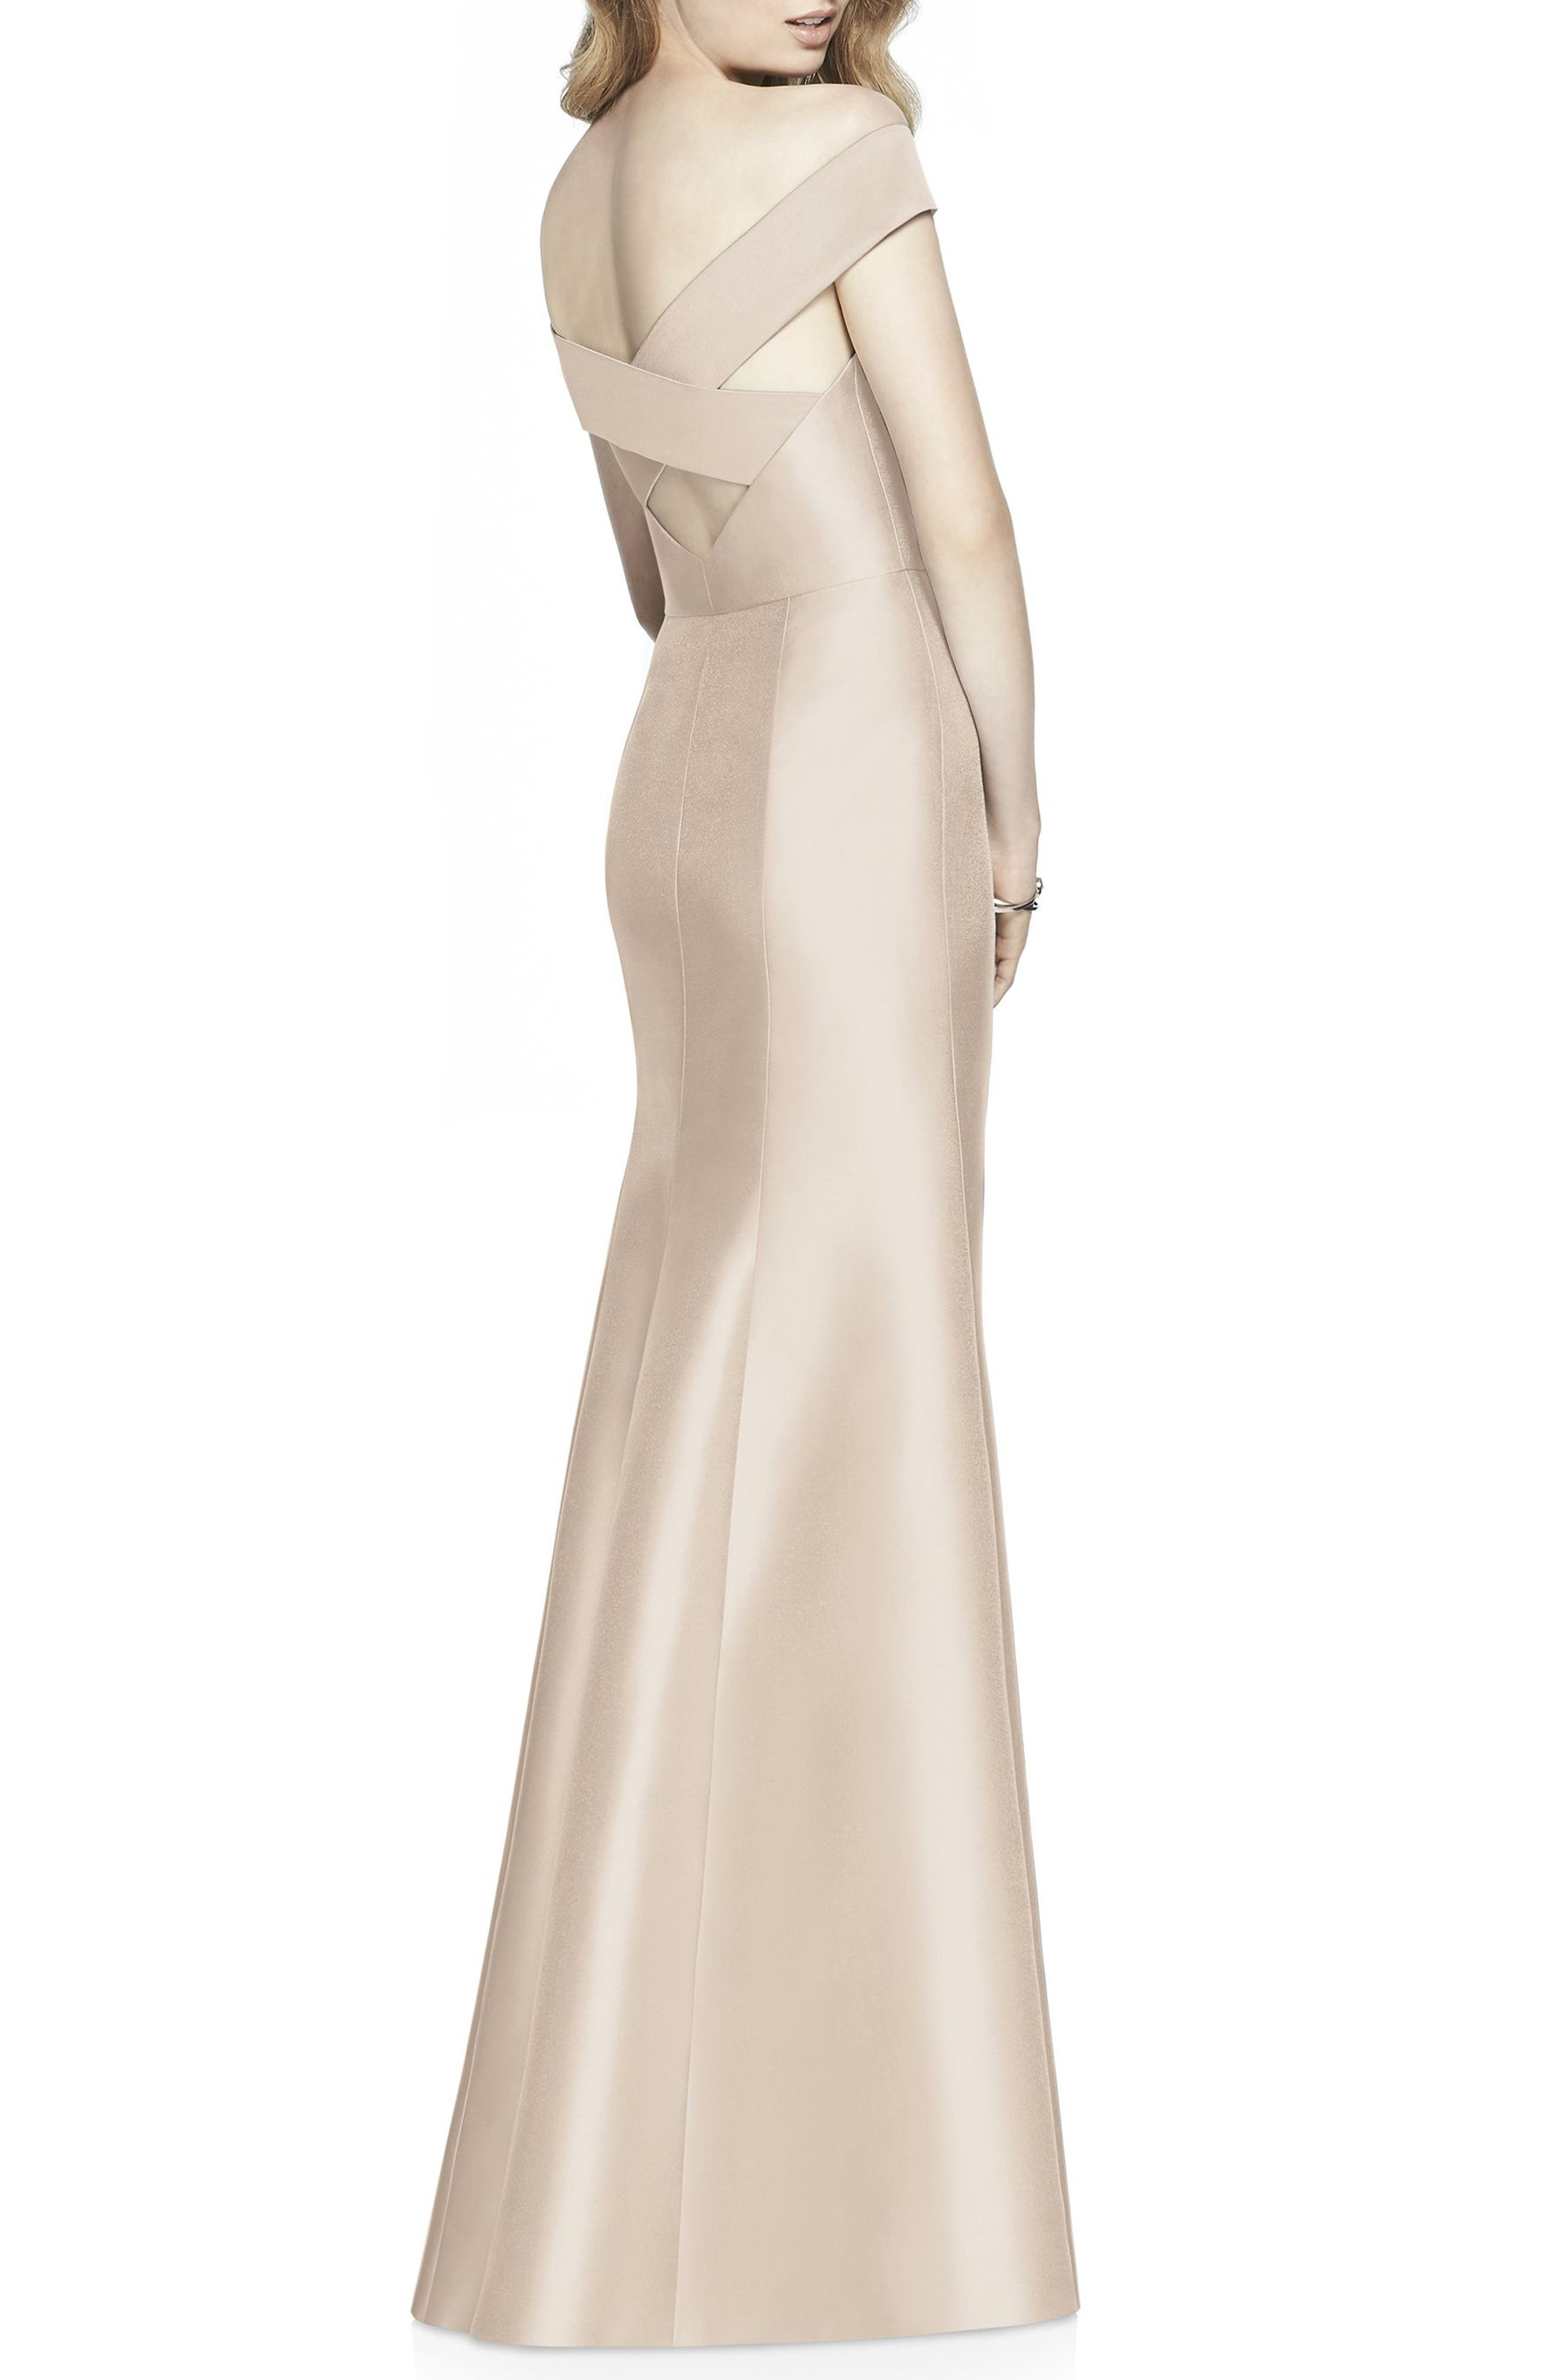 ALFRED SUNG, Off the Shoulder Sateen Gown, Alternate thumbnail 2, color, CAMEO